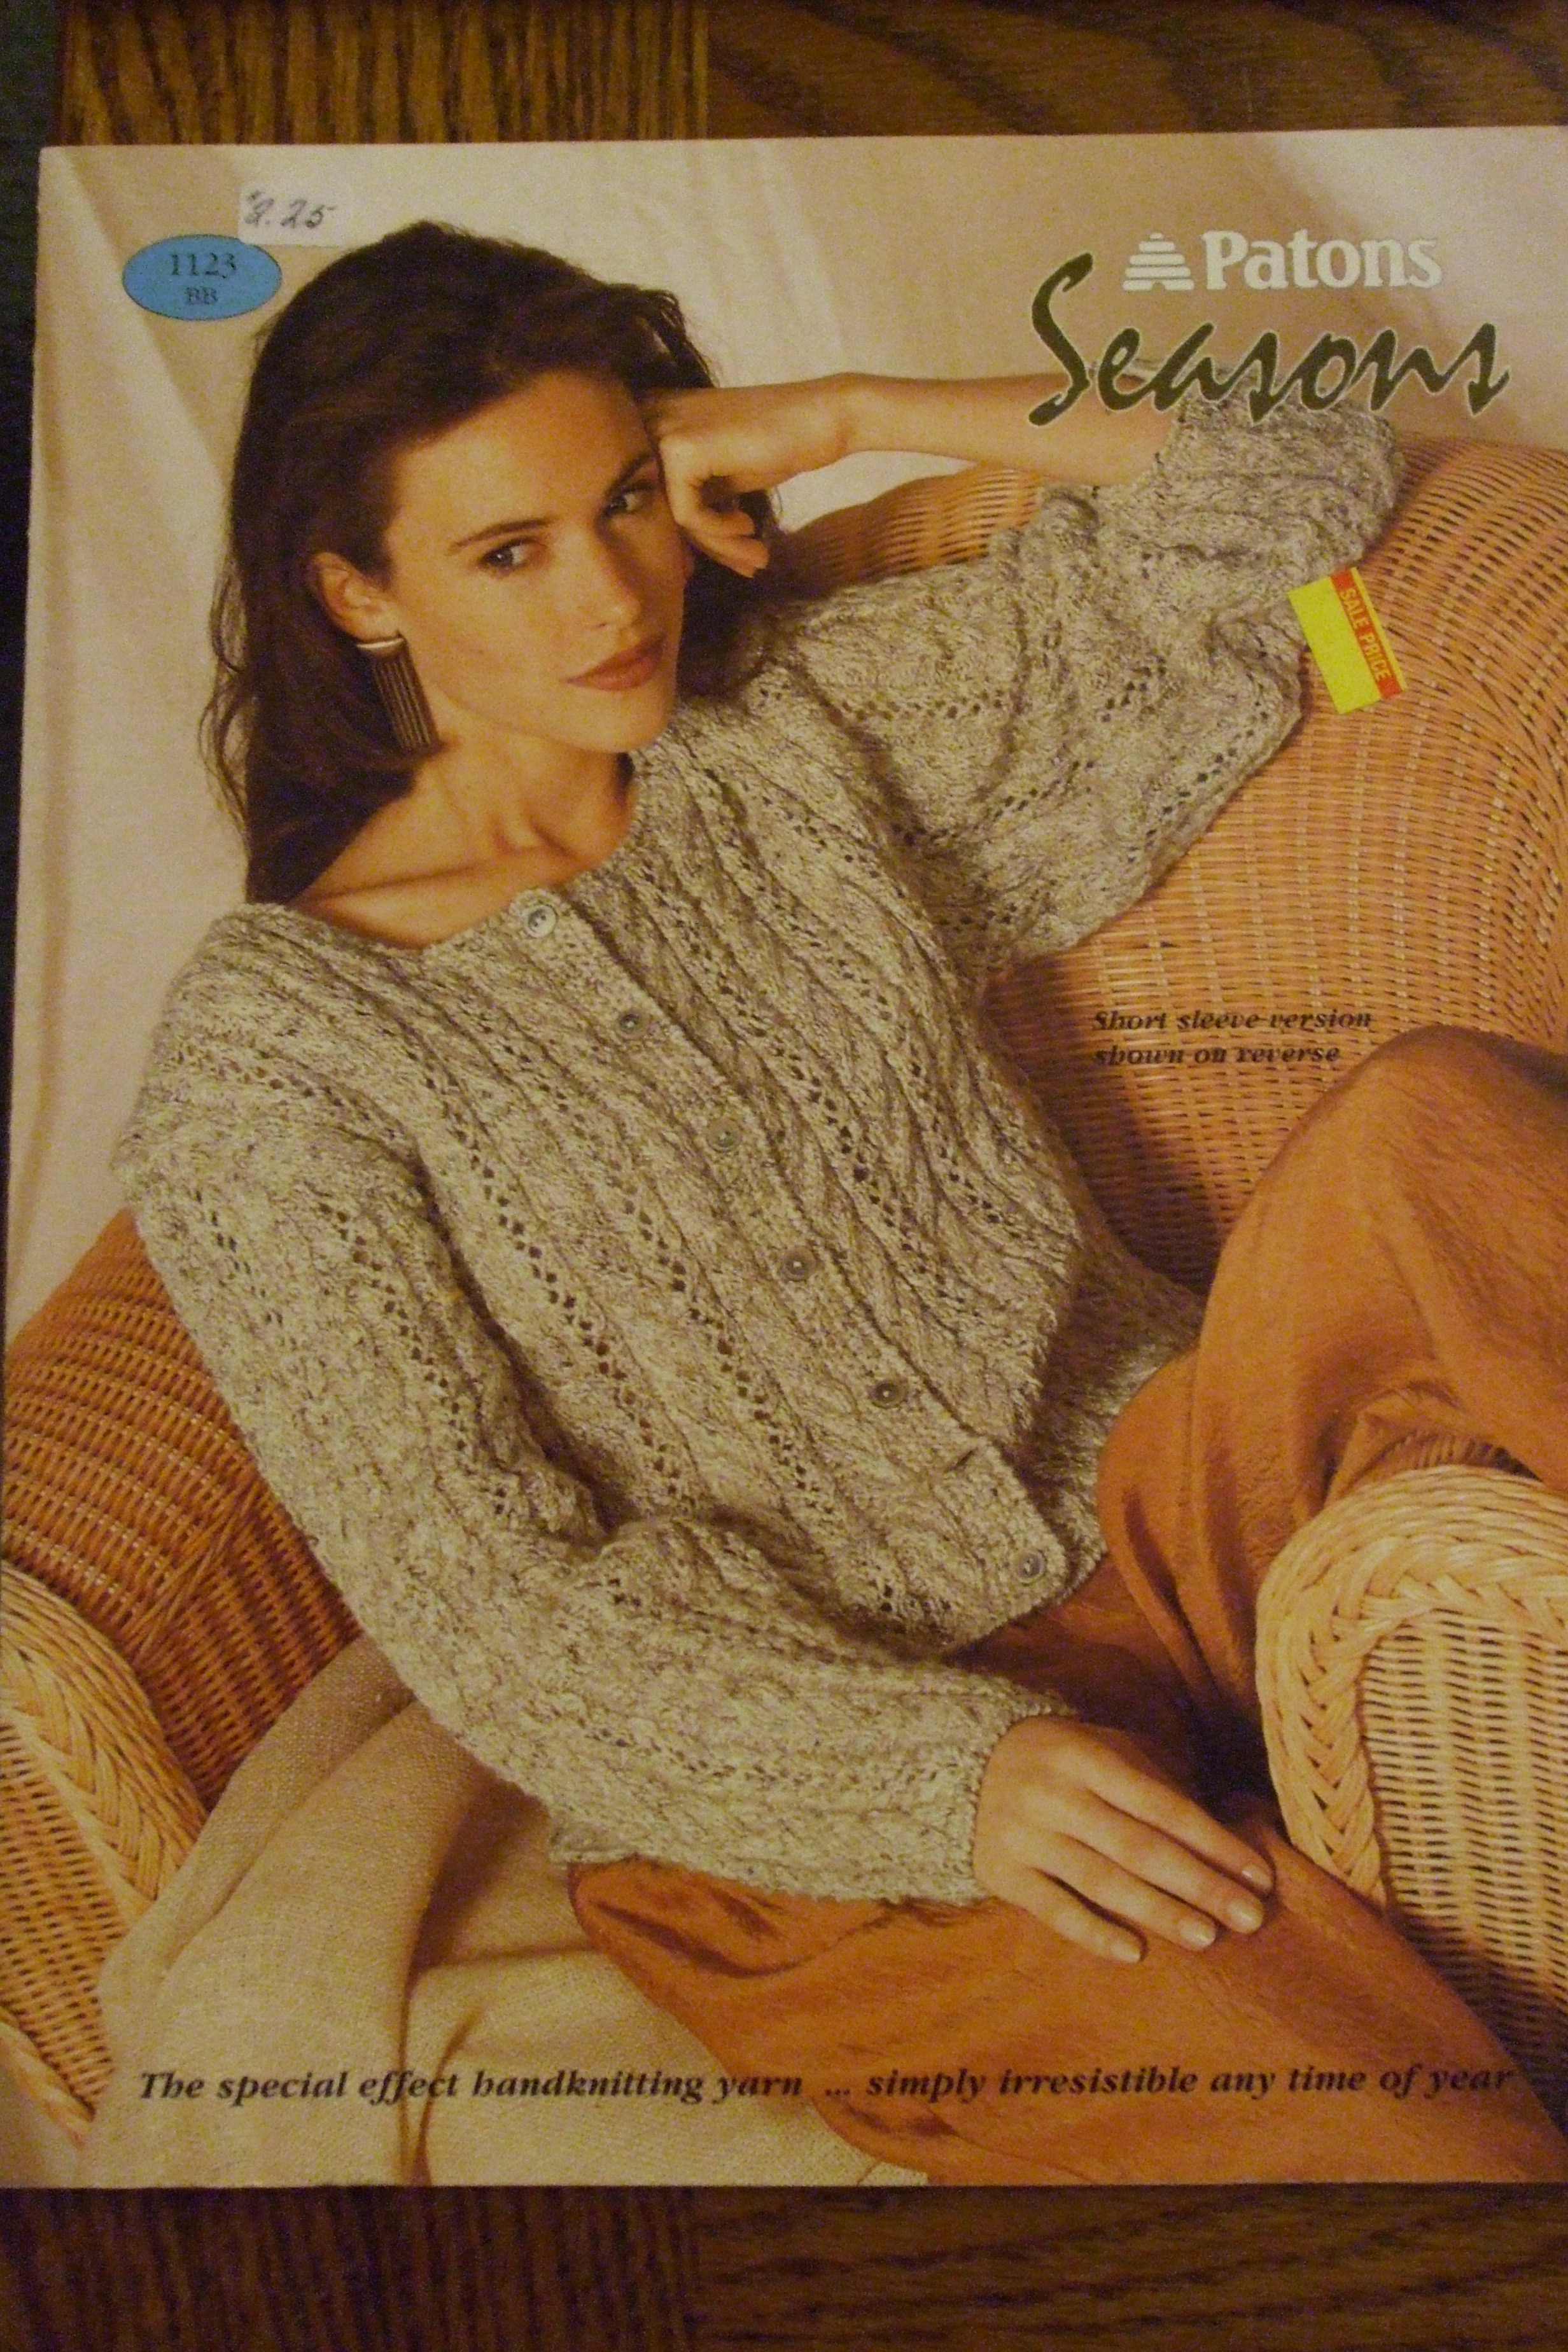 Knitting Patterns For Women Patons Knitting Patterns Cardigans Pullovers Sweaters Women Turtlenecks